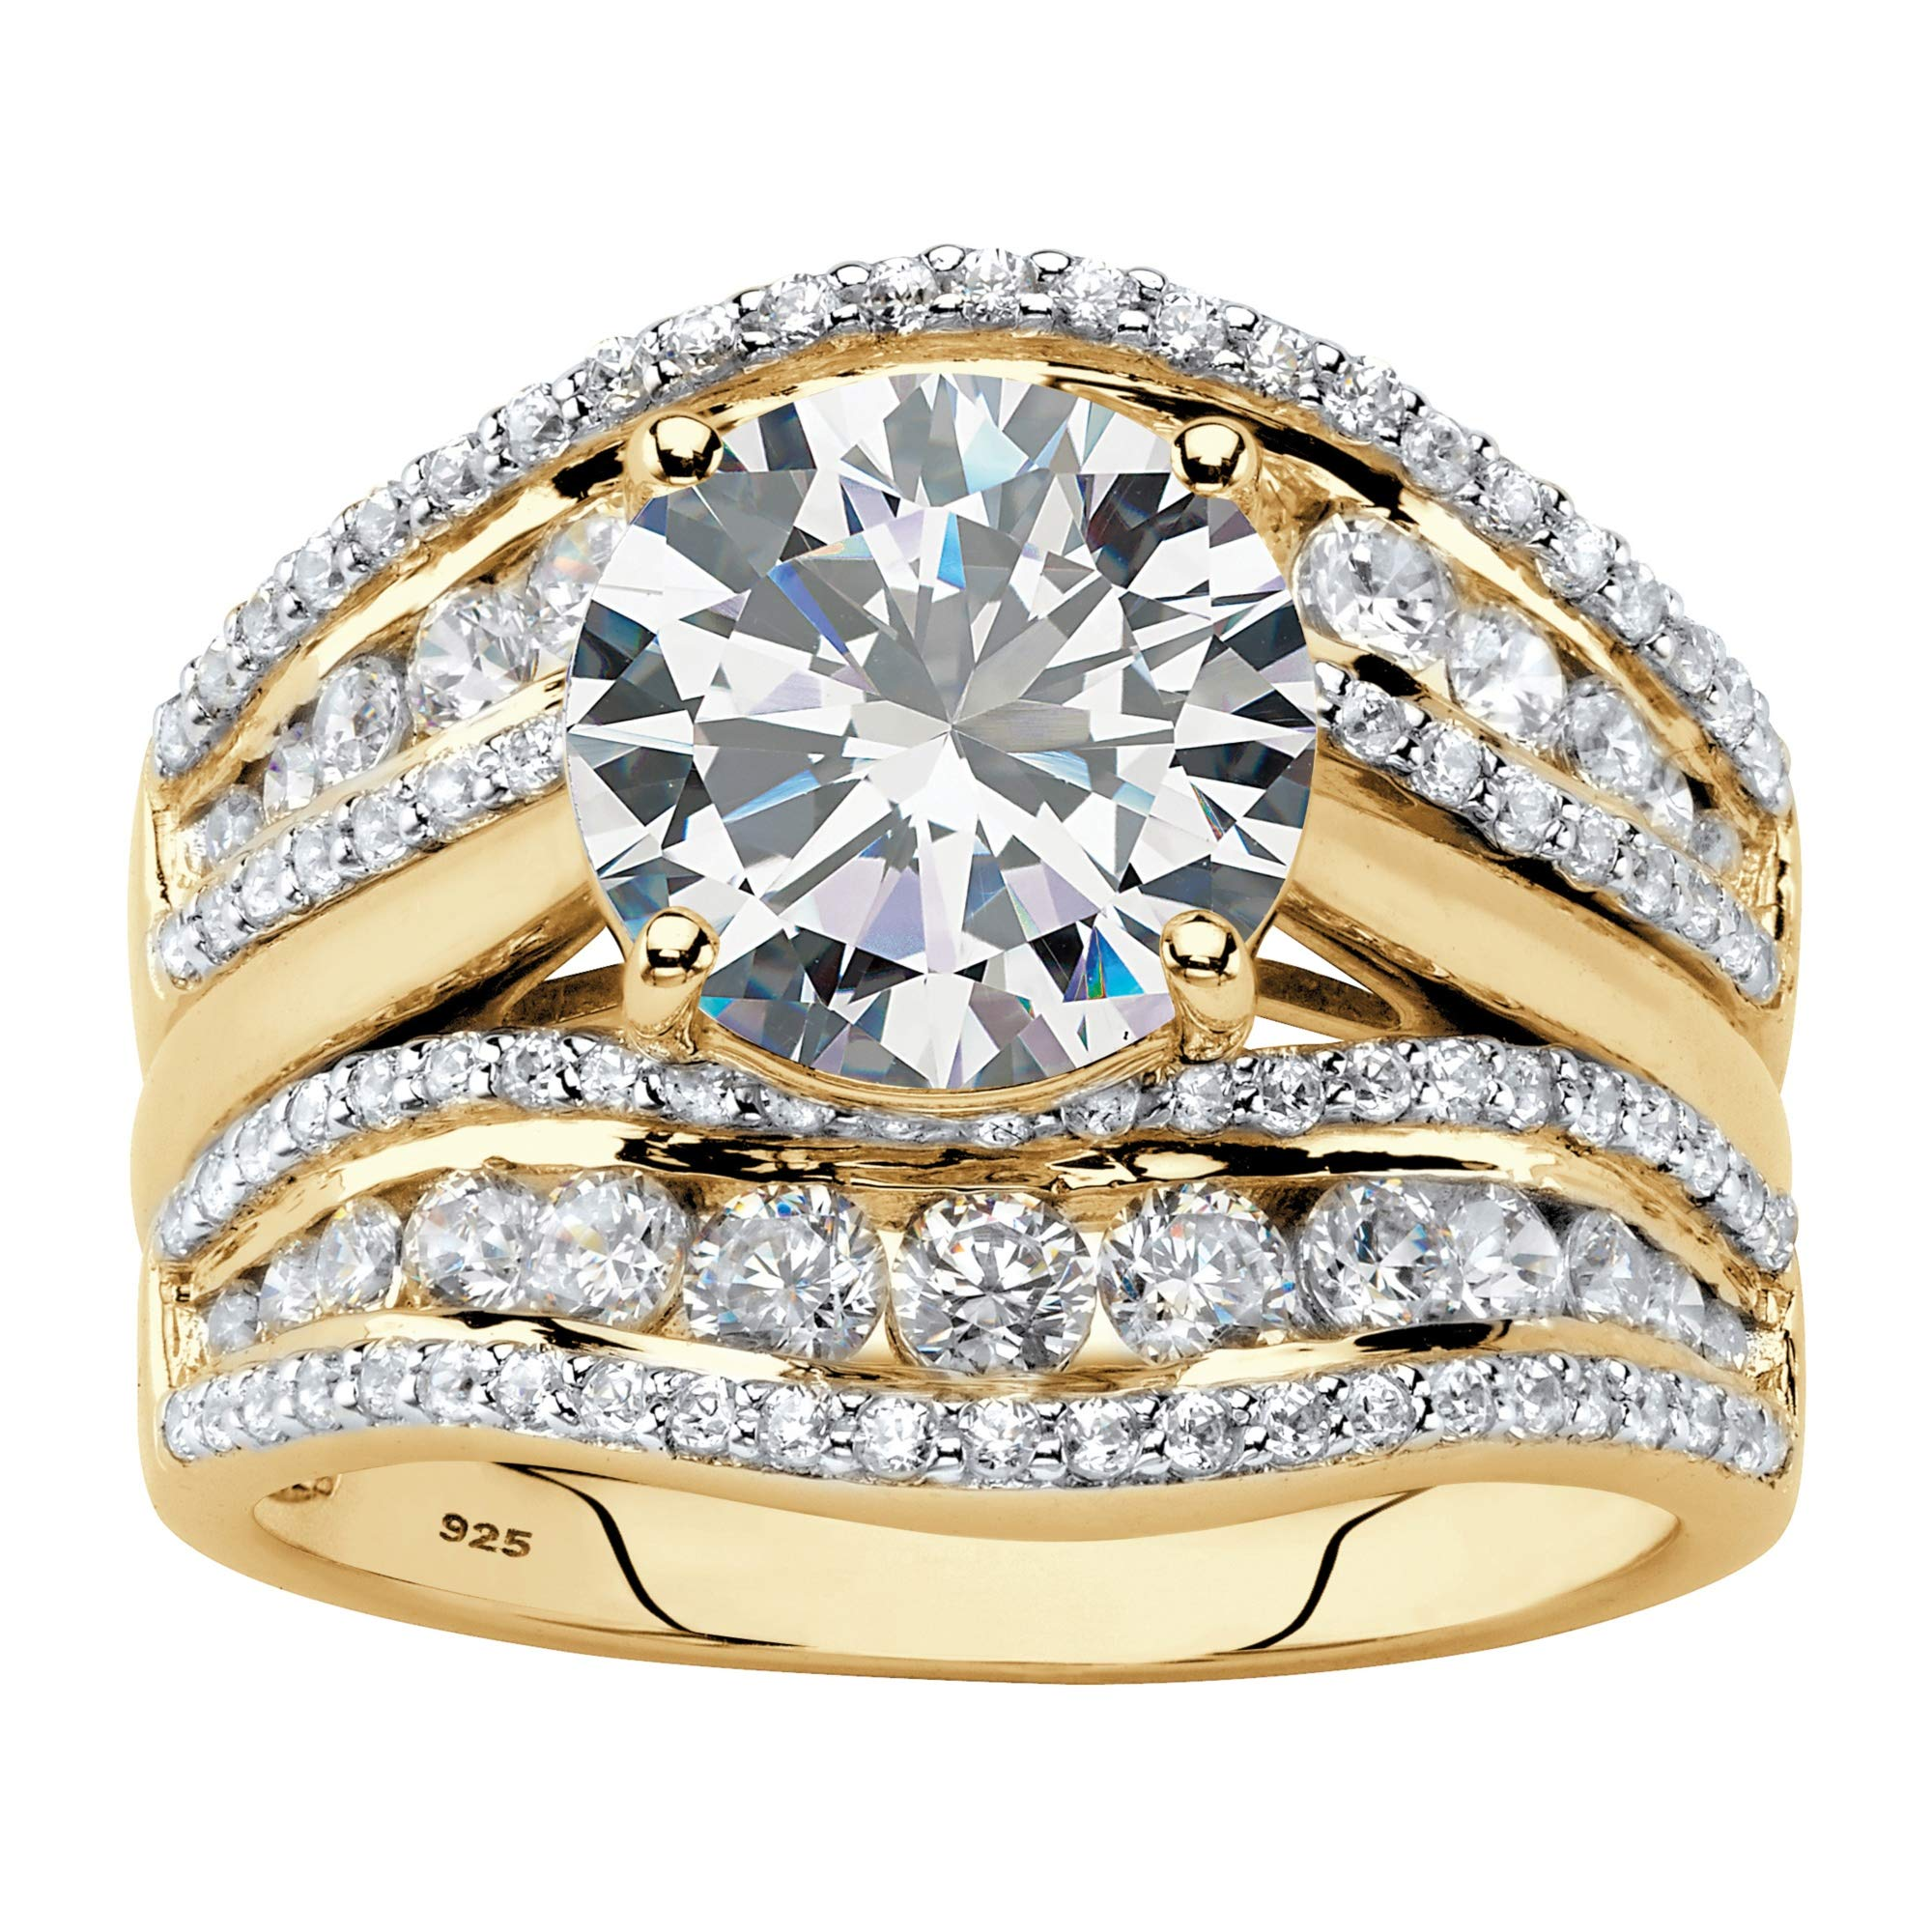 18K Yellow Gold over Sterling Silver 2 Piece Cubic Zirconia Multi Row Jacket Bridal Ring Set Size 10